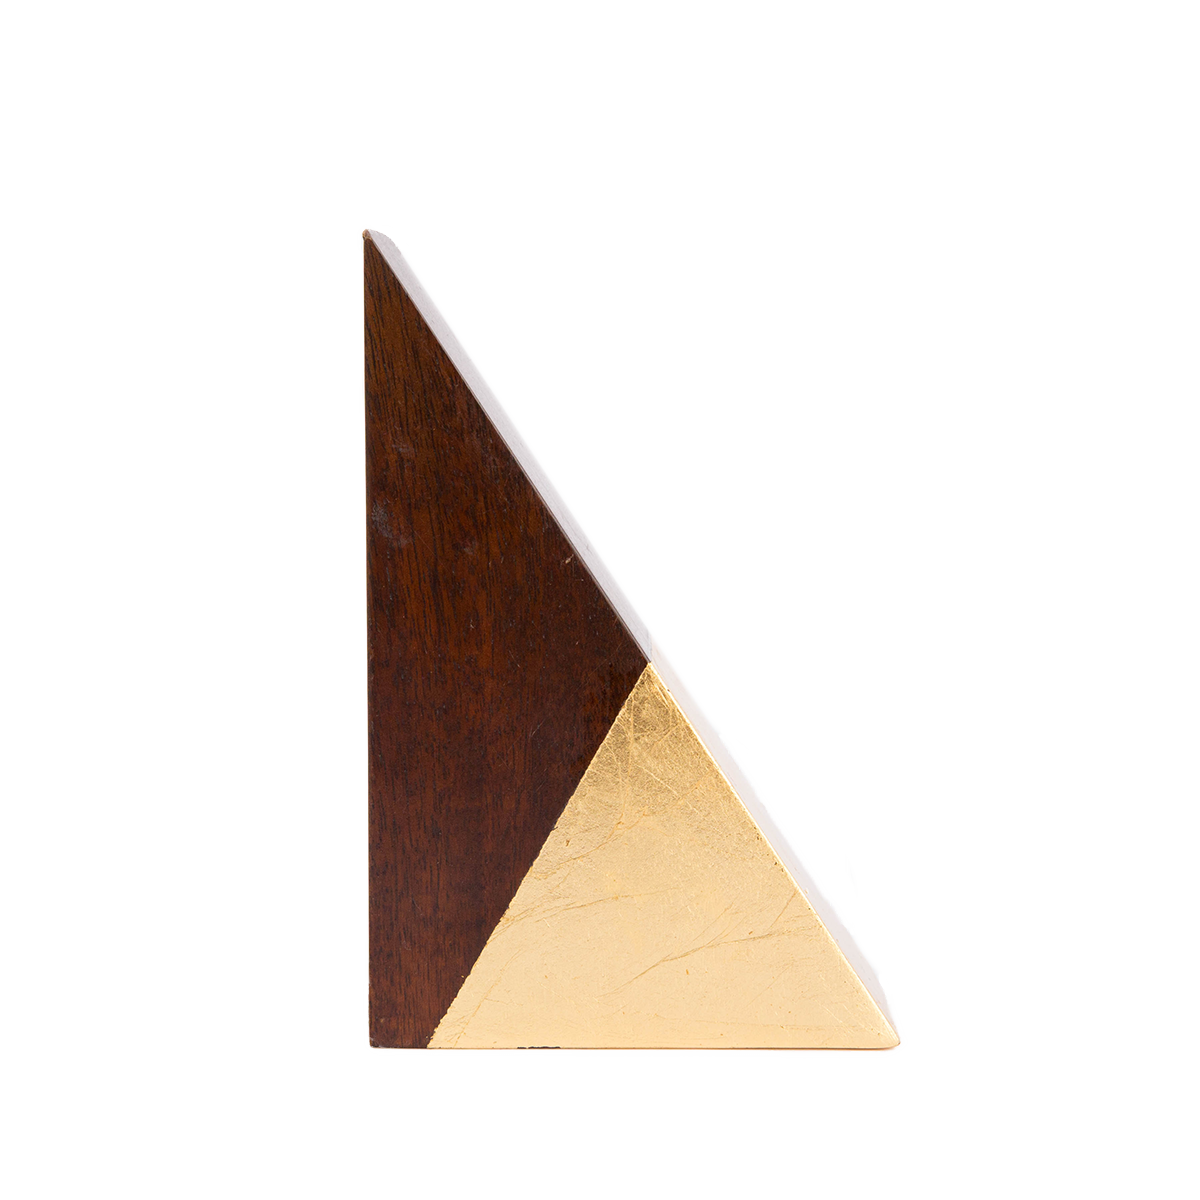 Triangle_Gilded_Object_1.png